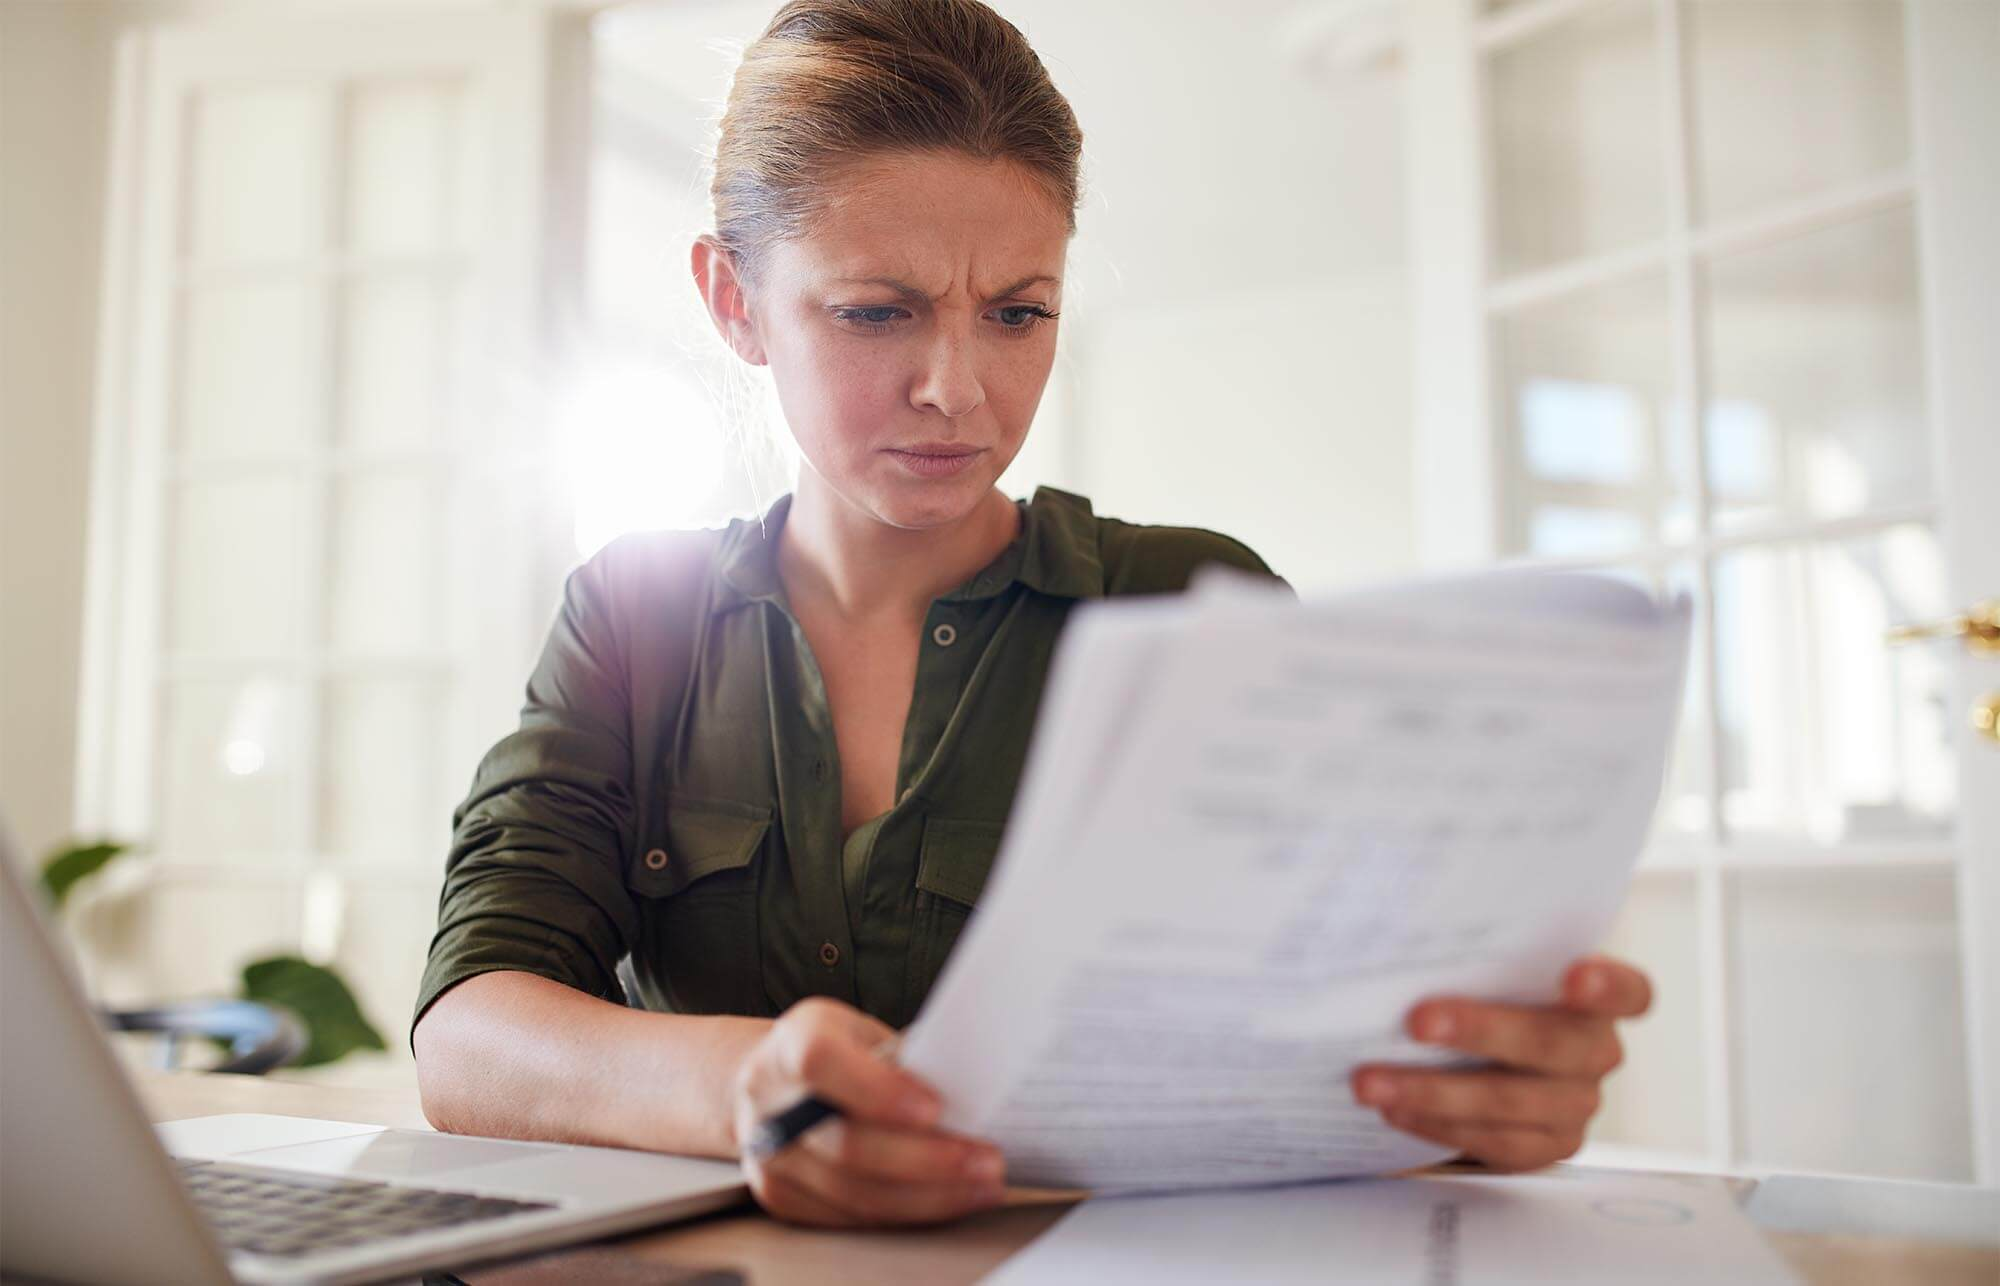 How Does Forbearance Affect Credit?